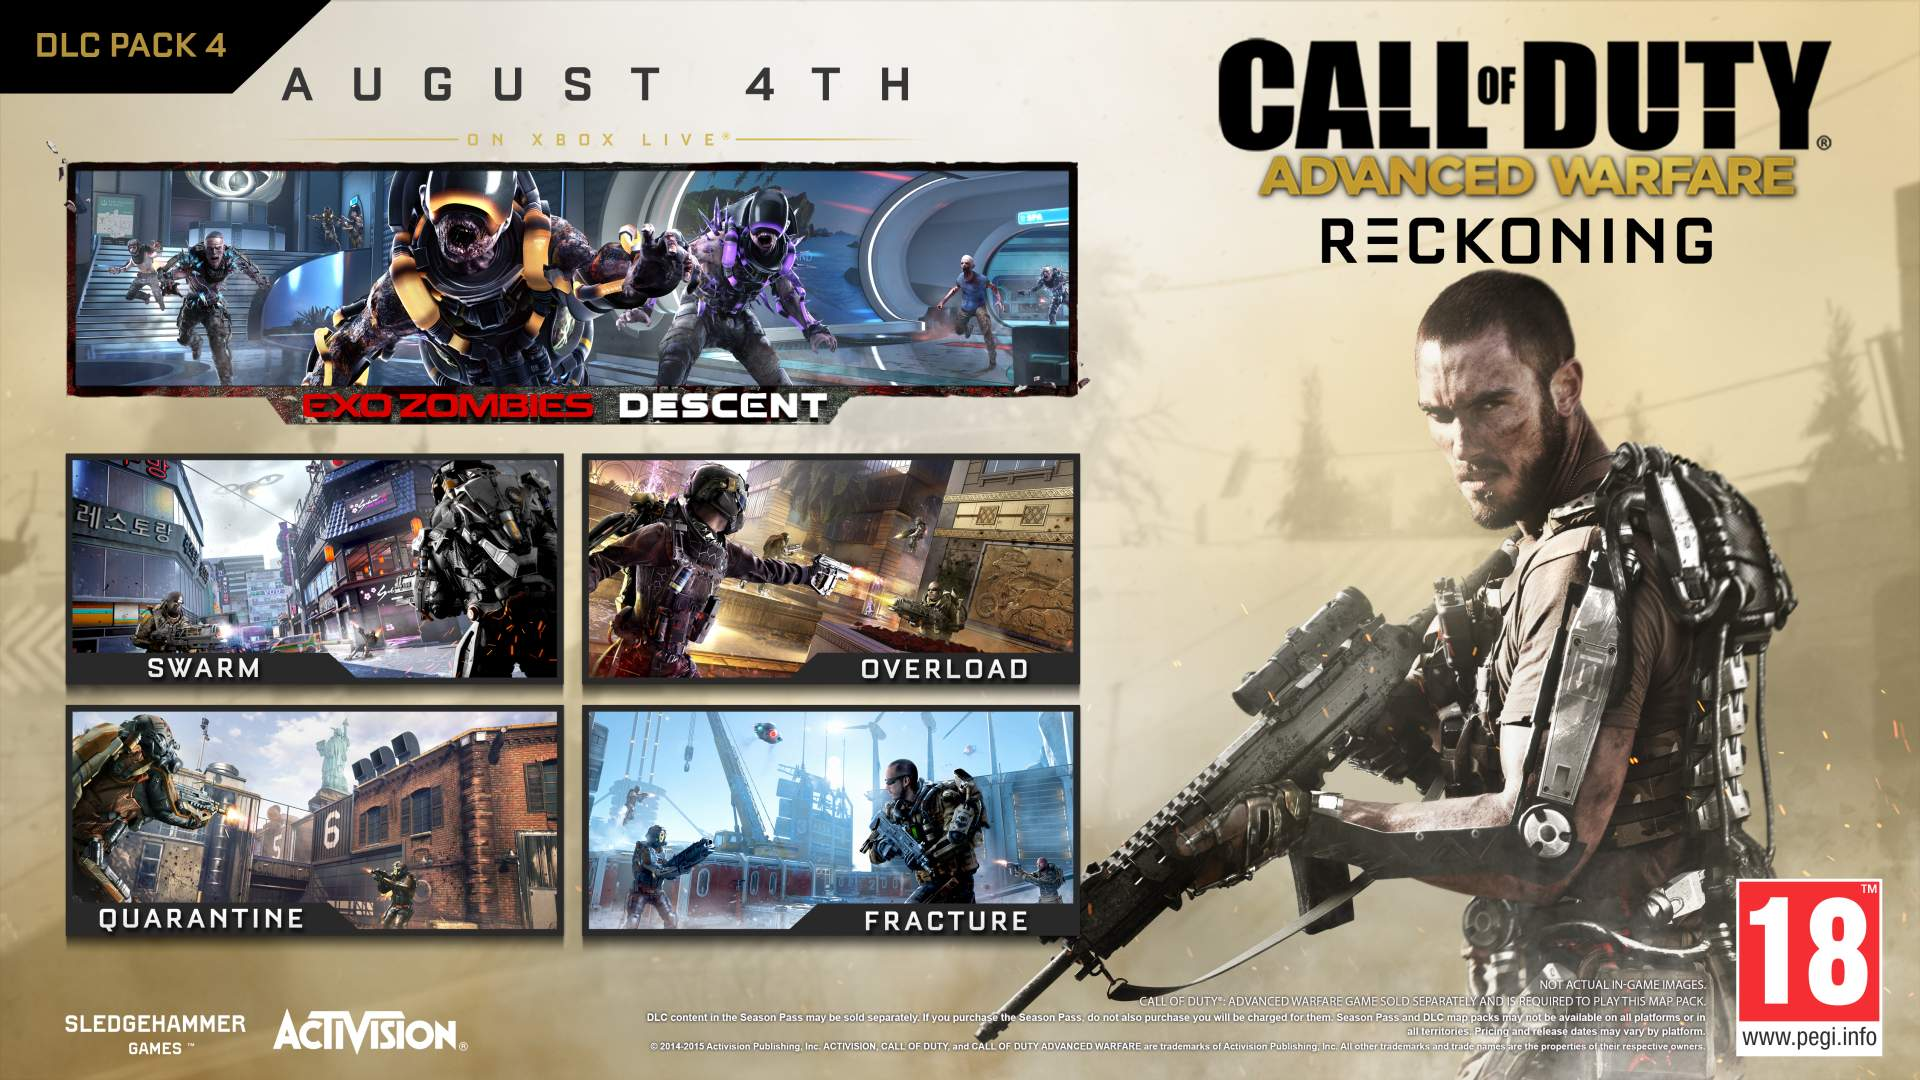 call-of-duty-advanced-warfare-reckoning-dlc-review-xbox-one-488477-2